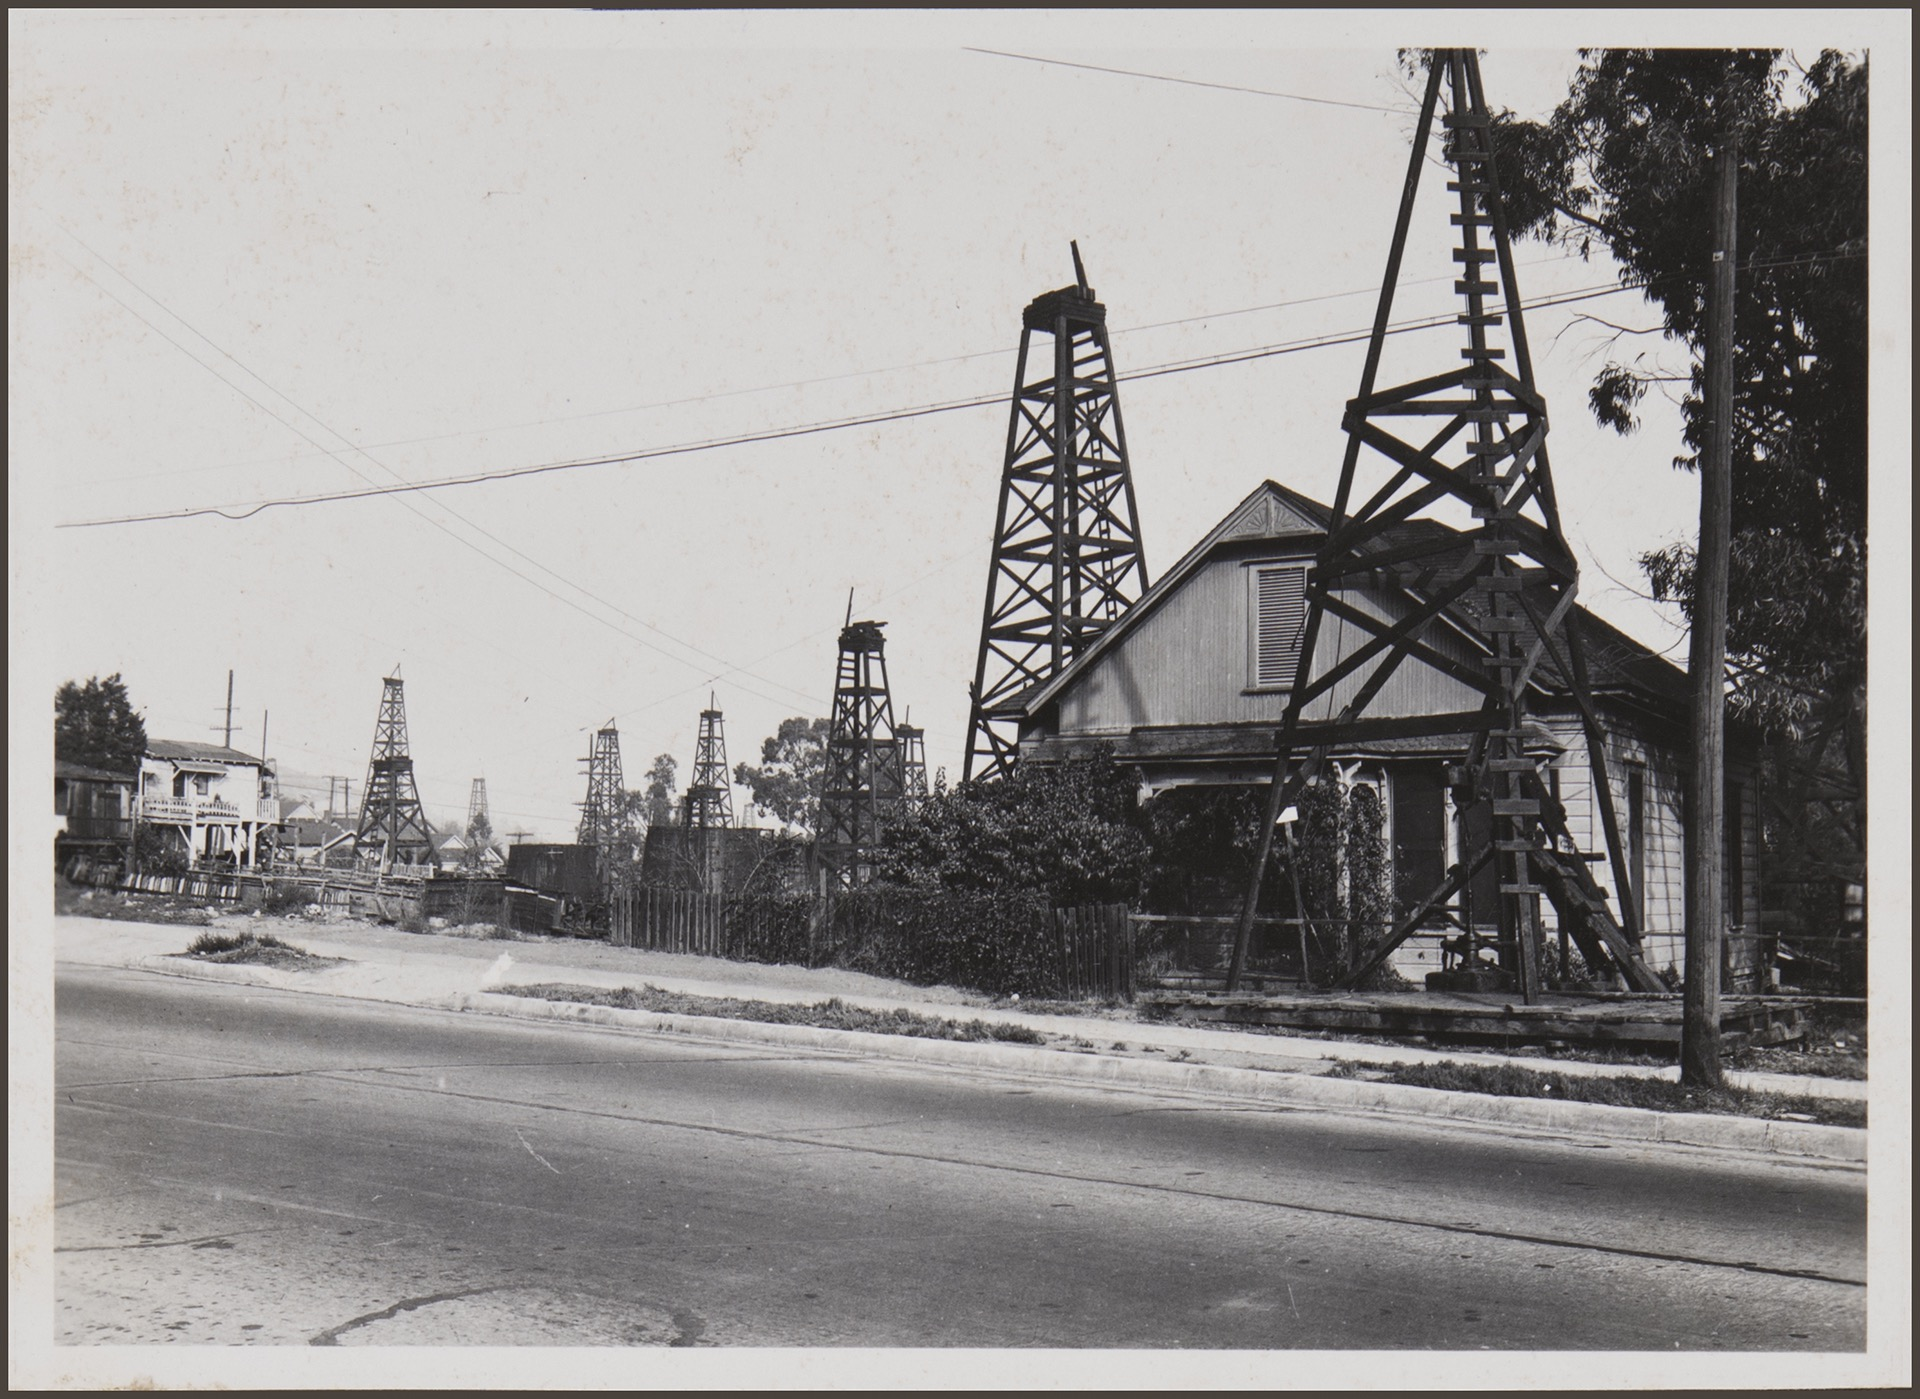 [Old oil wells still producing at Adobe Street]. Los Angeles: 1932-33 by Anton Wagner, PC 17, California Historical Society.